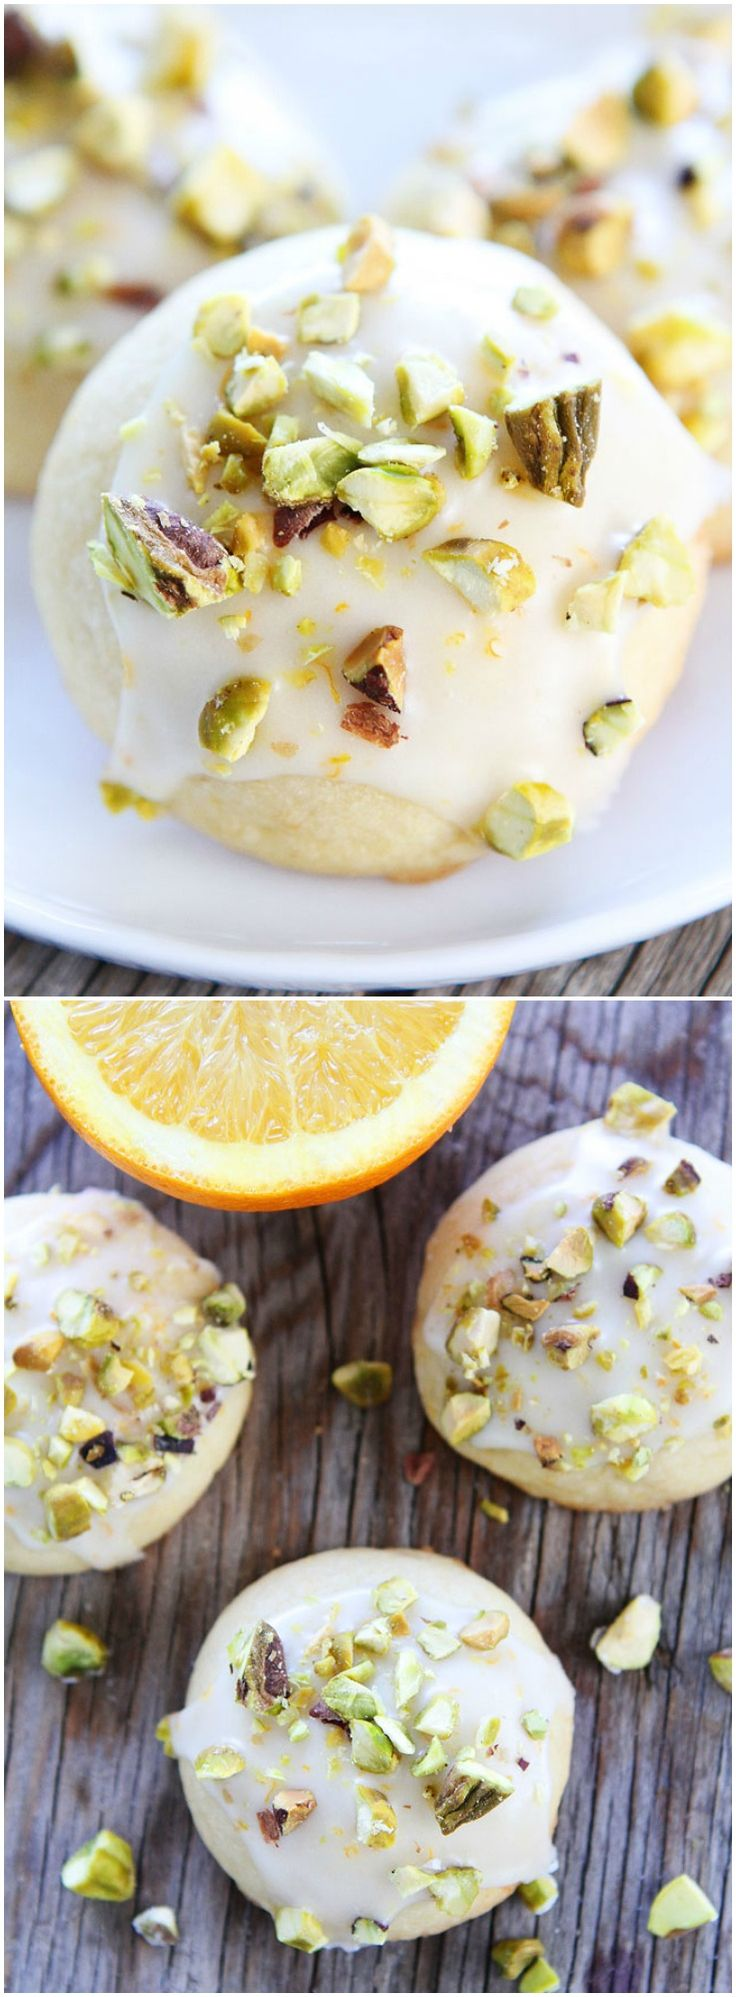 Orange Pistachio Cookie Recipe on twopeasandtheirpod.com Orange butter cookies with a sweet orange glaze and chopped pistachios. We LOVE these cookies!